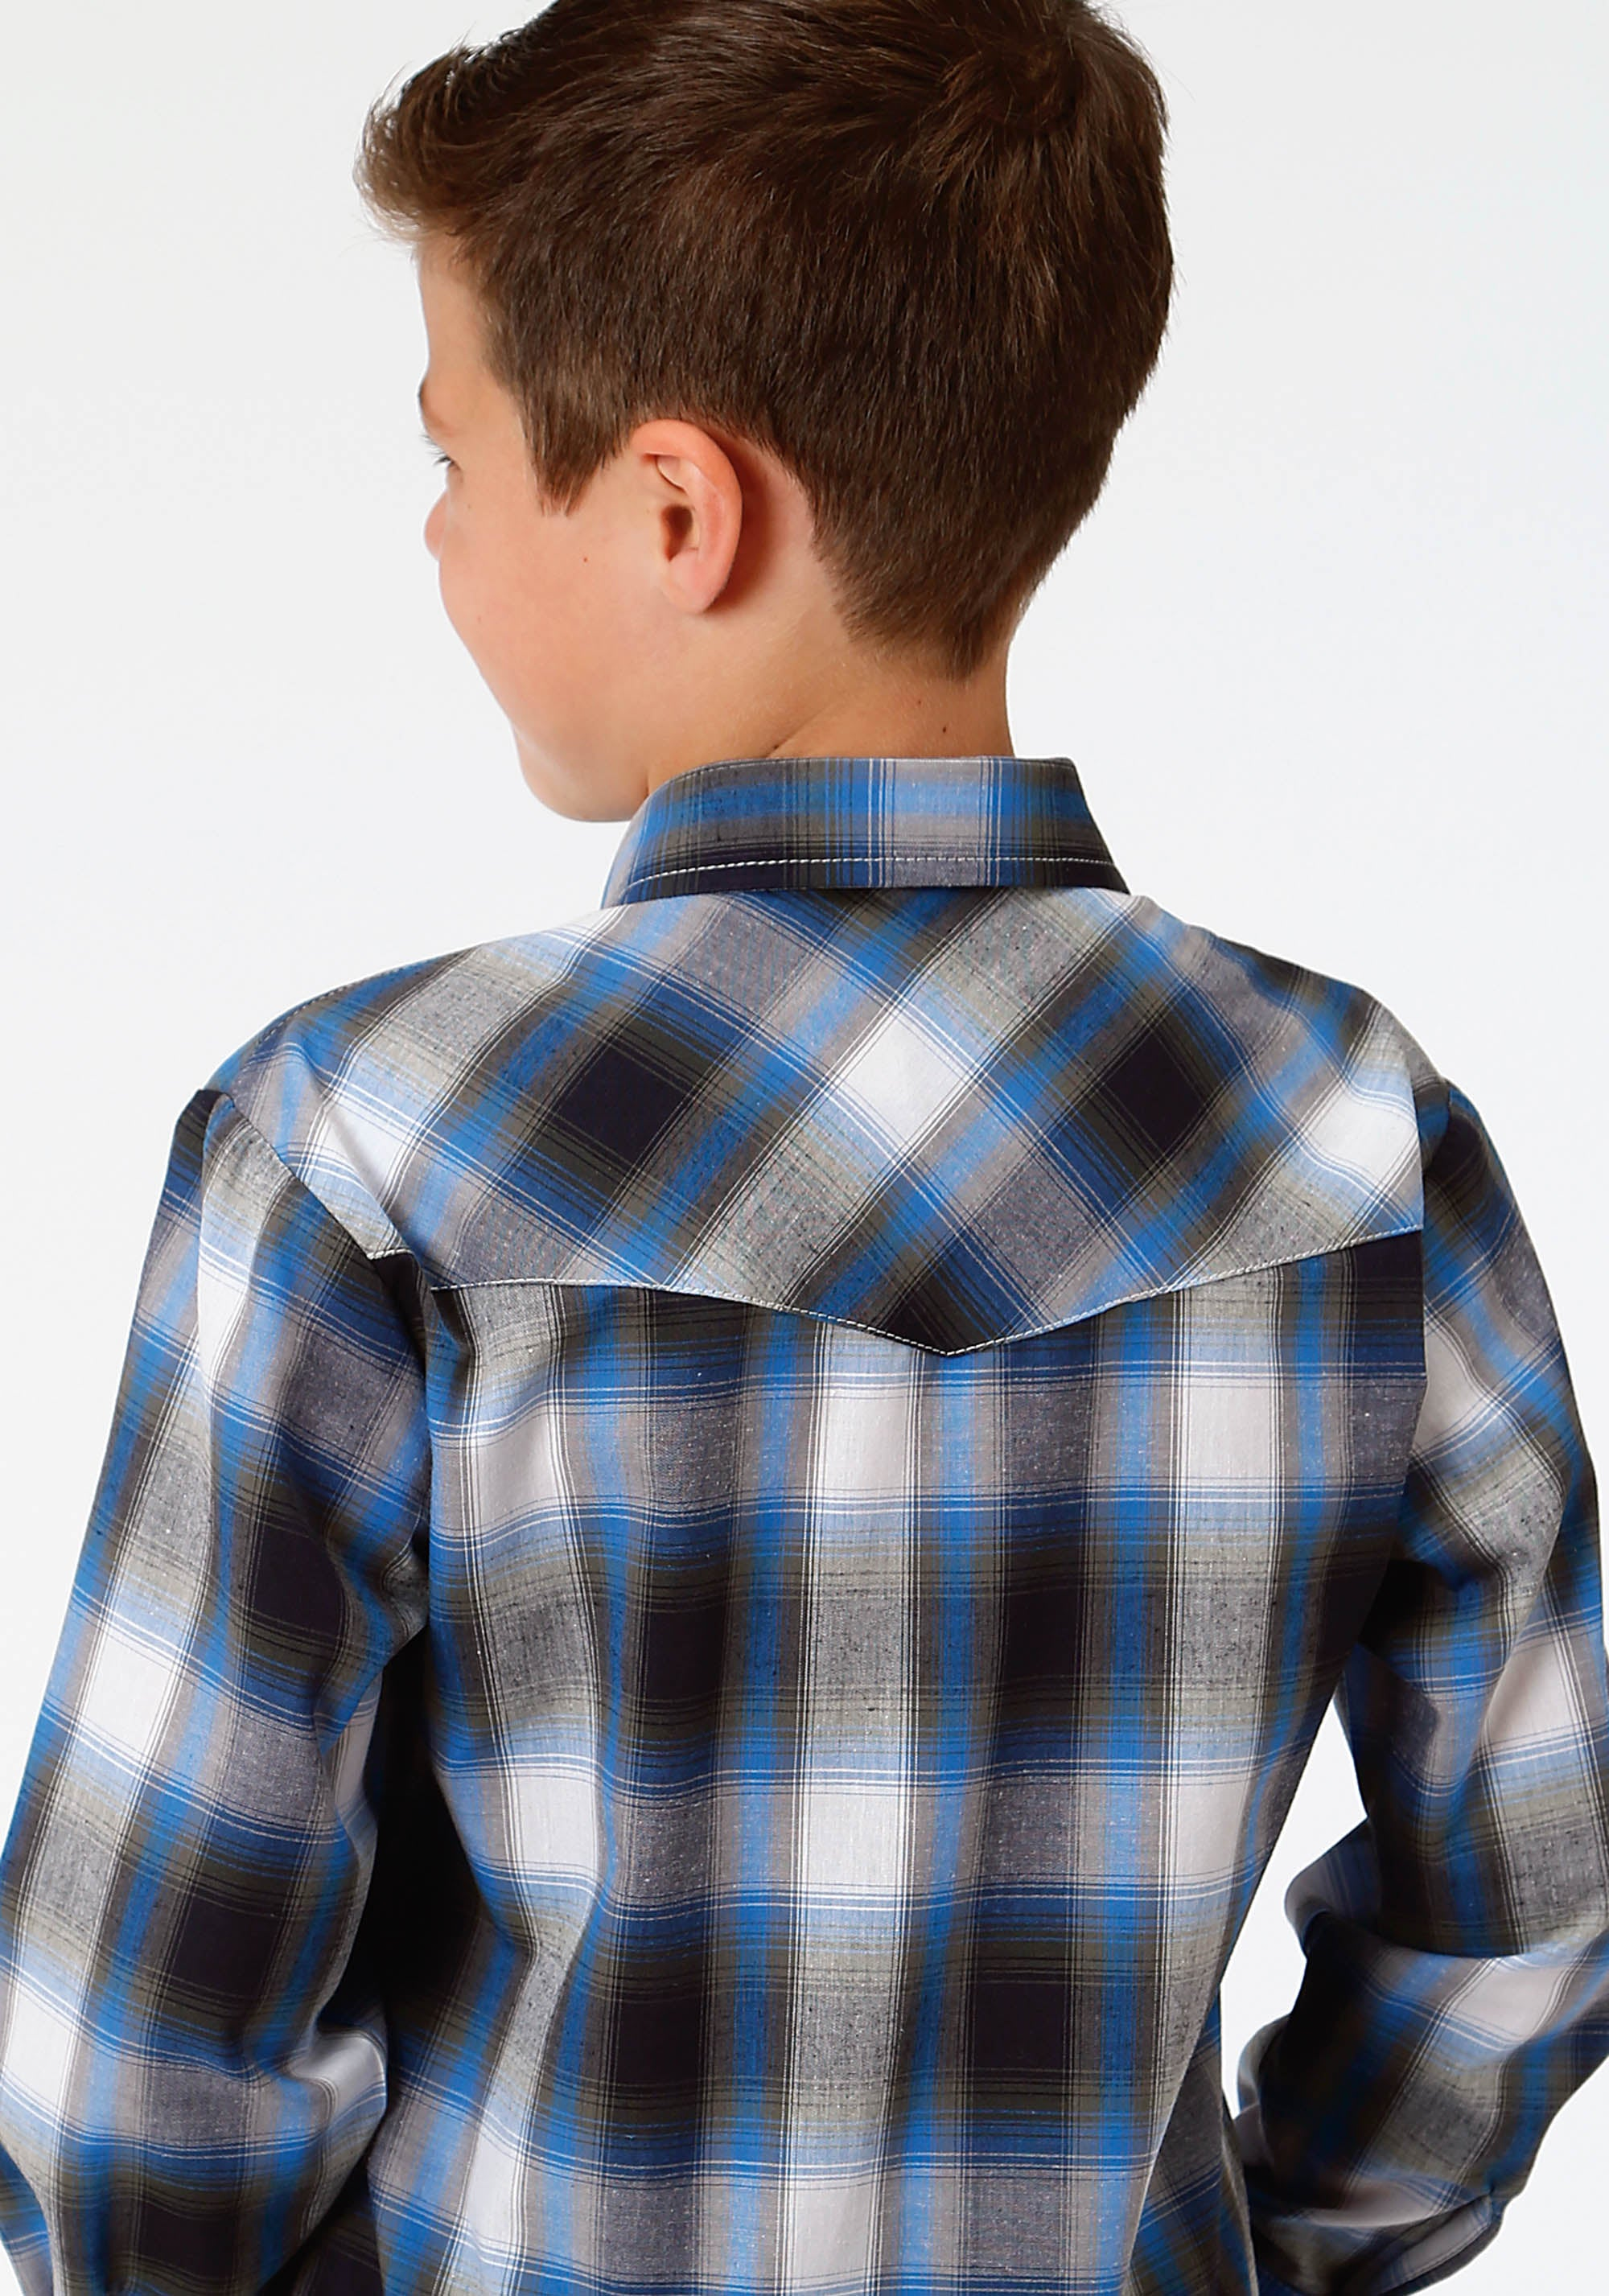 ROPER BOYS BLUE 0022 SKY BLUE, NAVY OLIVE PLAID KARMAN CLASSICS- 55/45 PLAID LONG SLEEVE